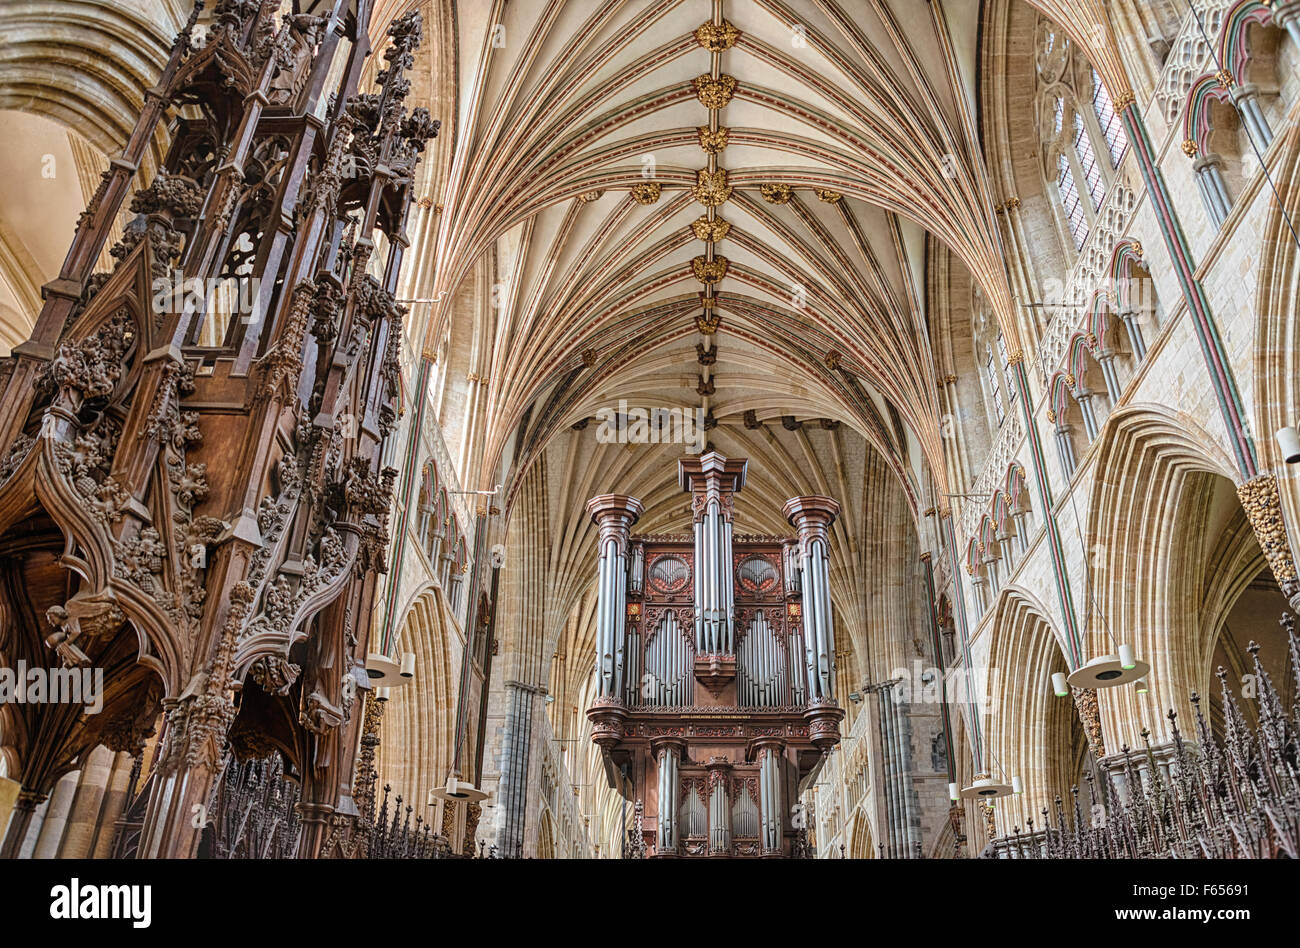 Interior and Pipe Organ of Exeter Cathedral, Devon, England, UK - Stock Image